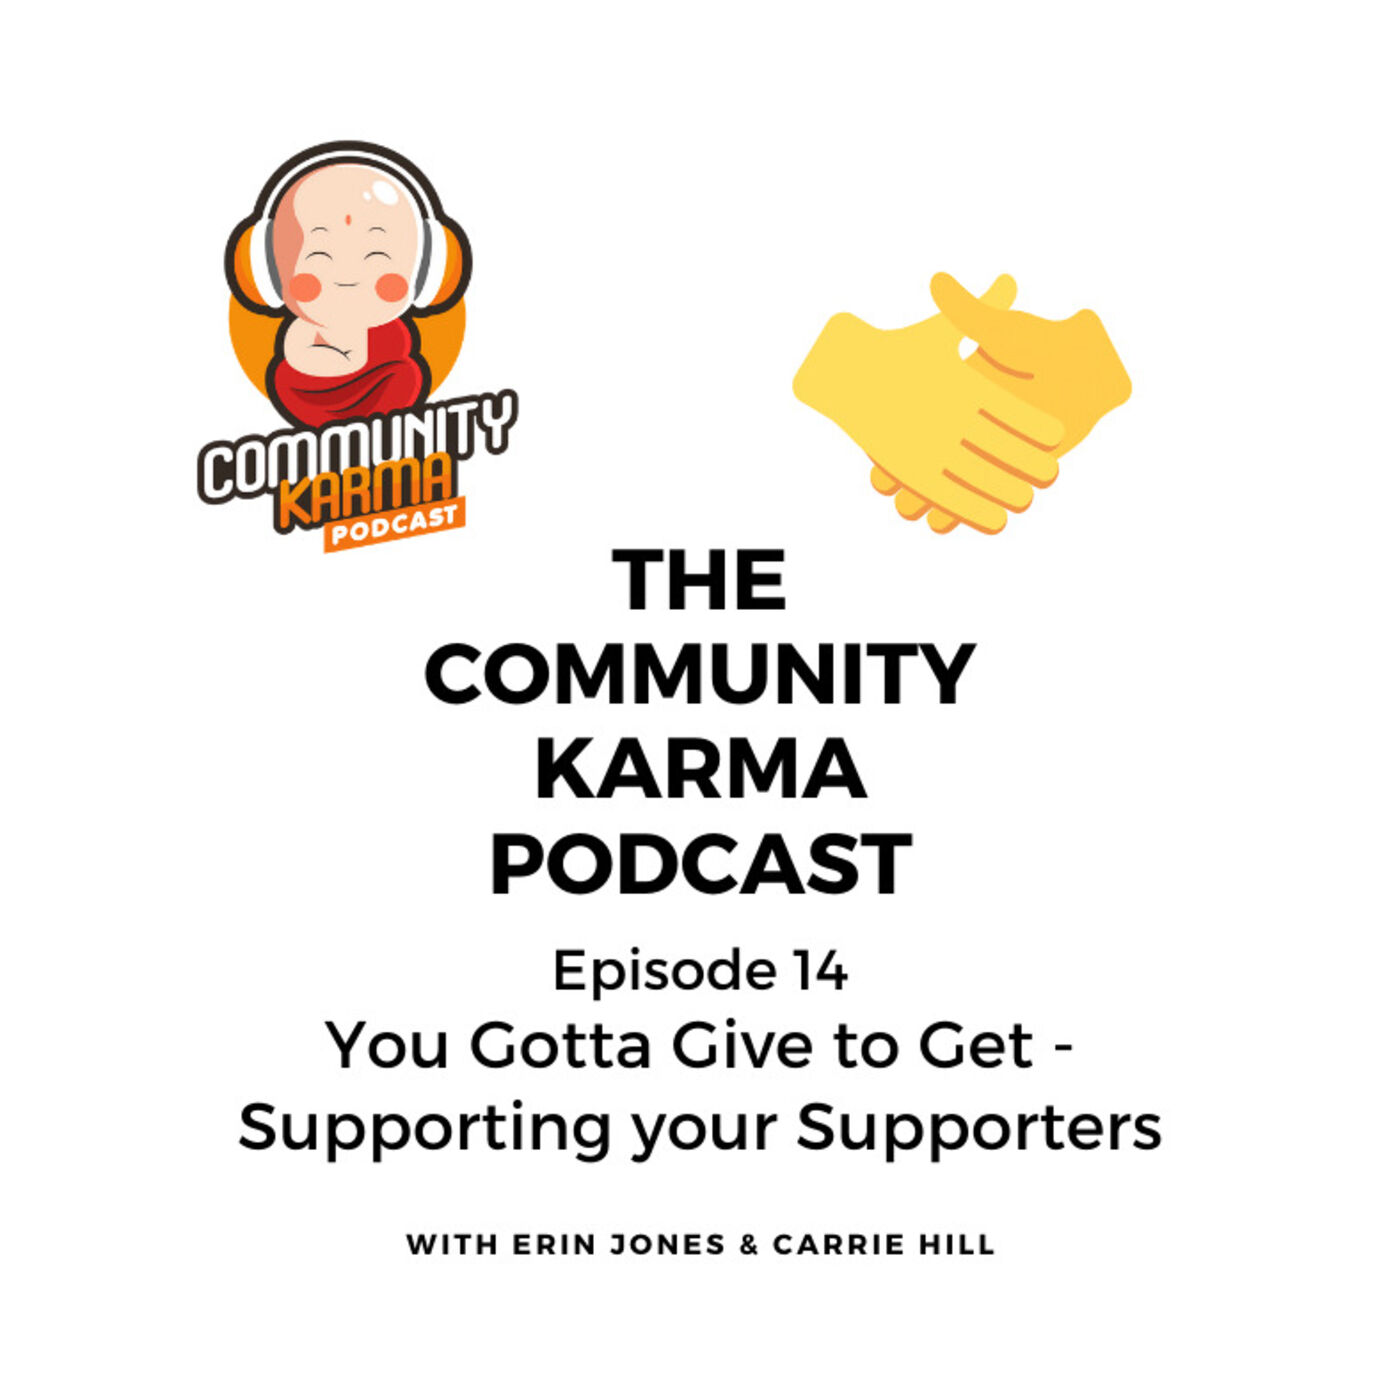 Episode 14: You Gotta Give to Get - Supporting your supporters